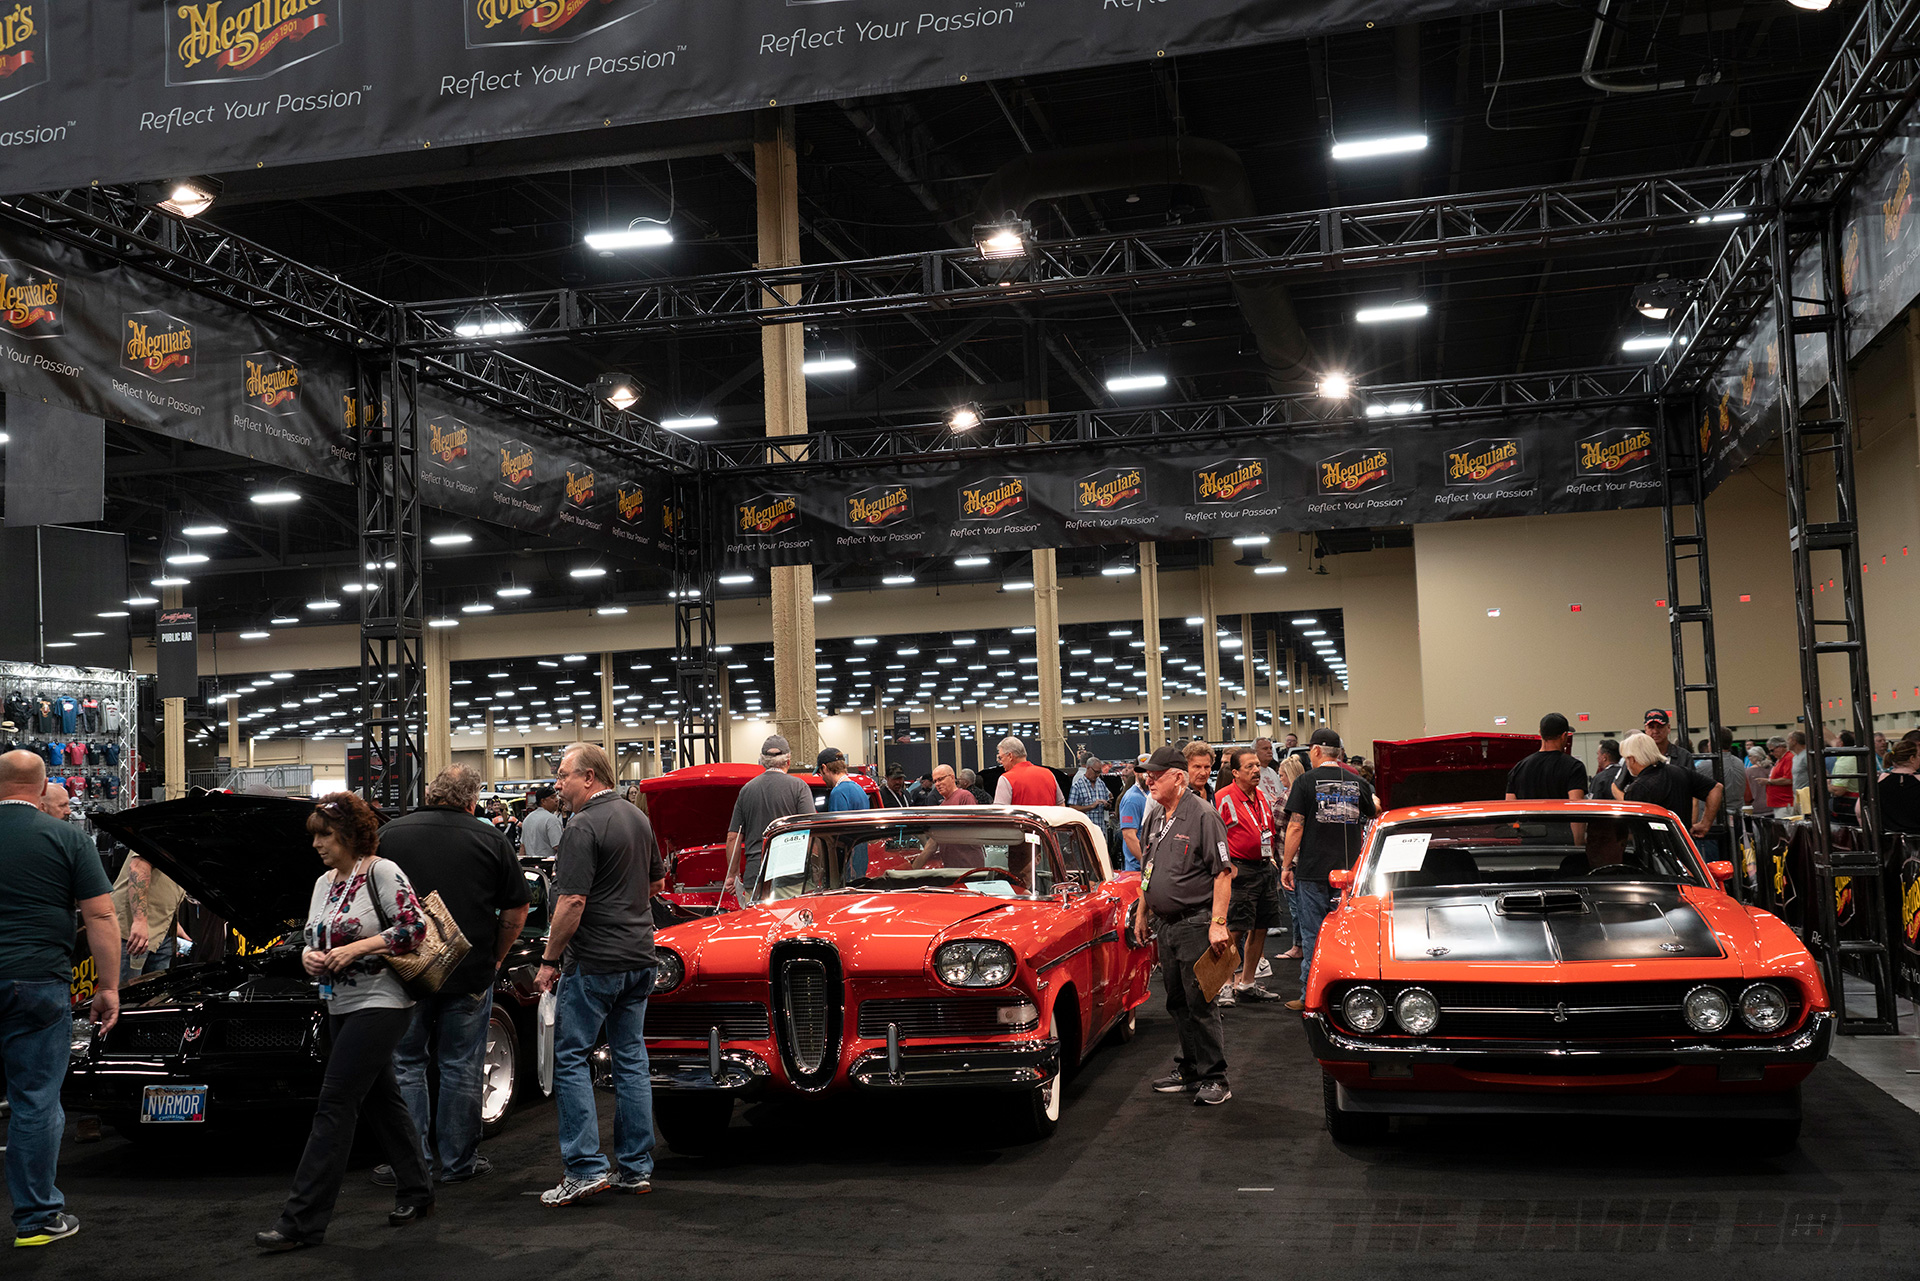 orange, red, and black classic muscle cars on display at Barrett-Jackson Auctions